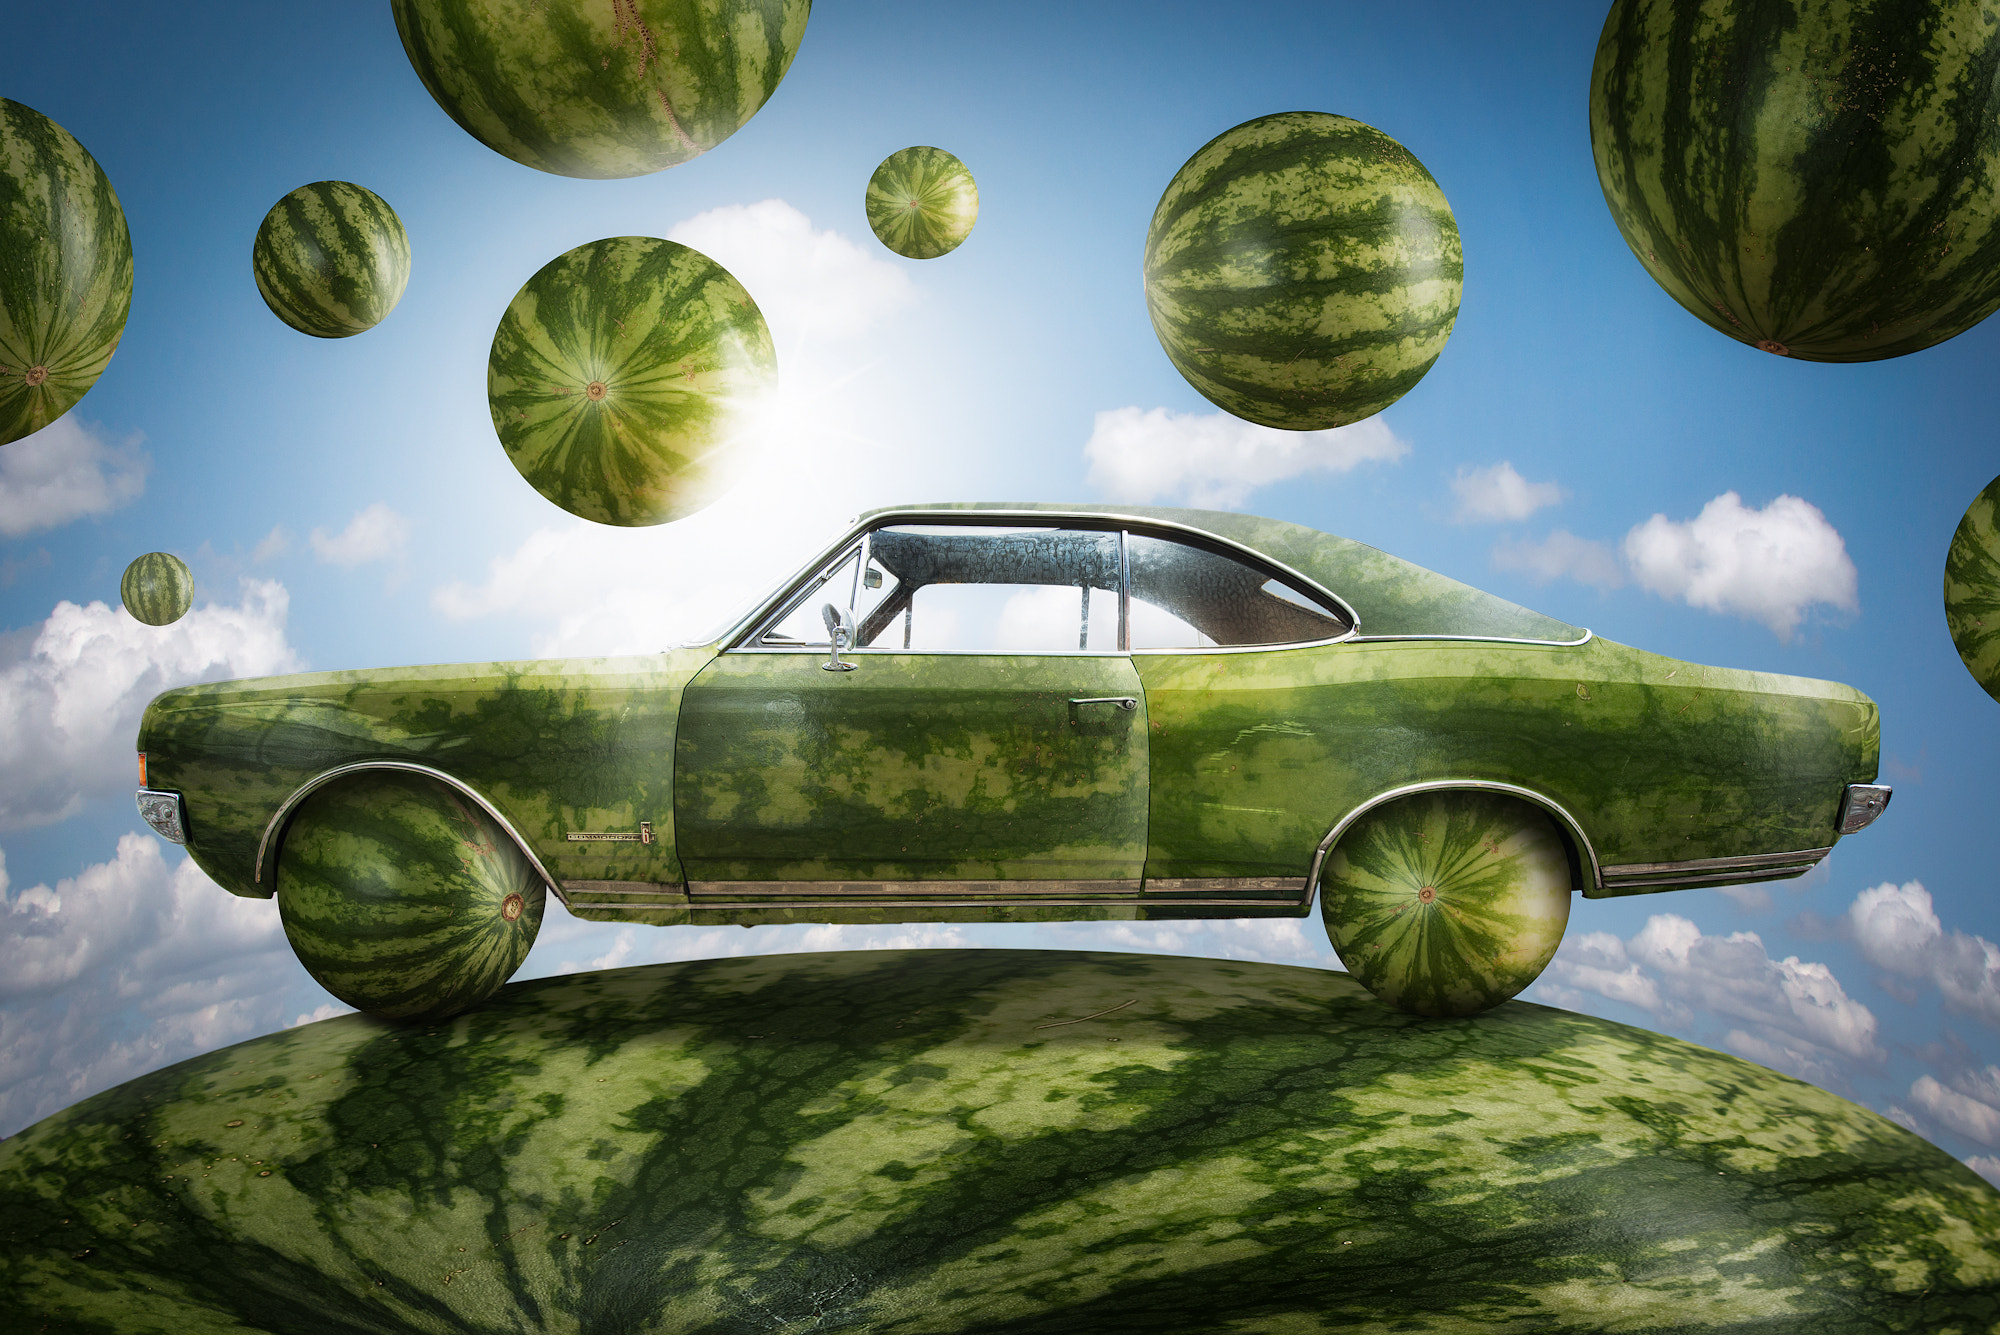 Photograph The Watermeloncar by John Wilhelm is a photoholic on 500px